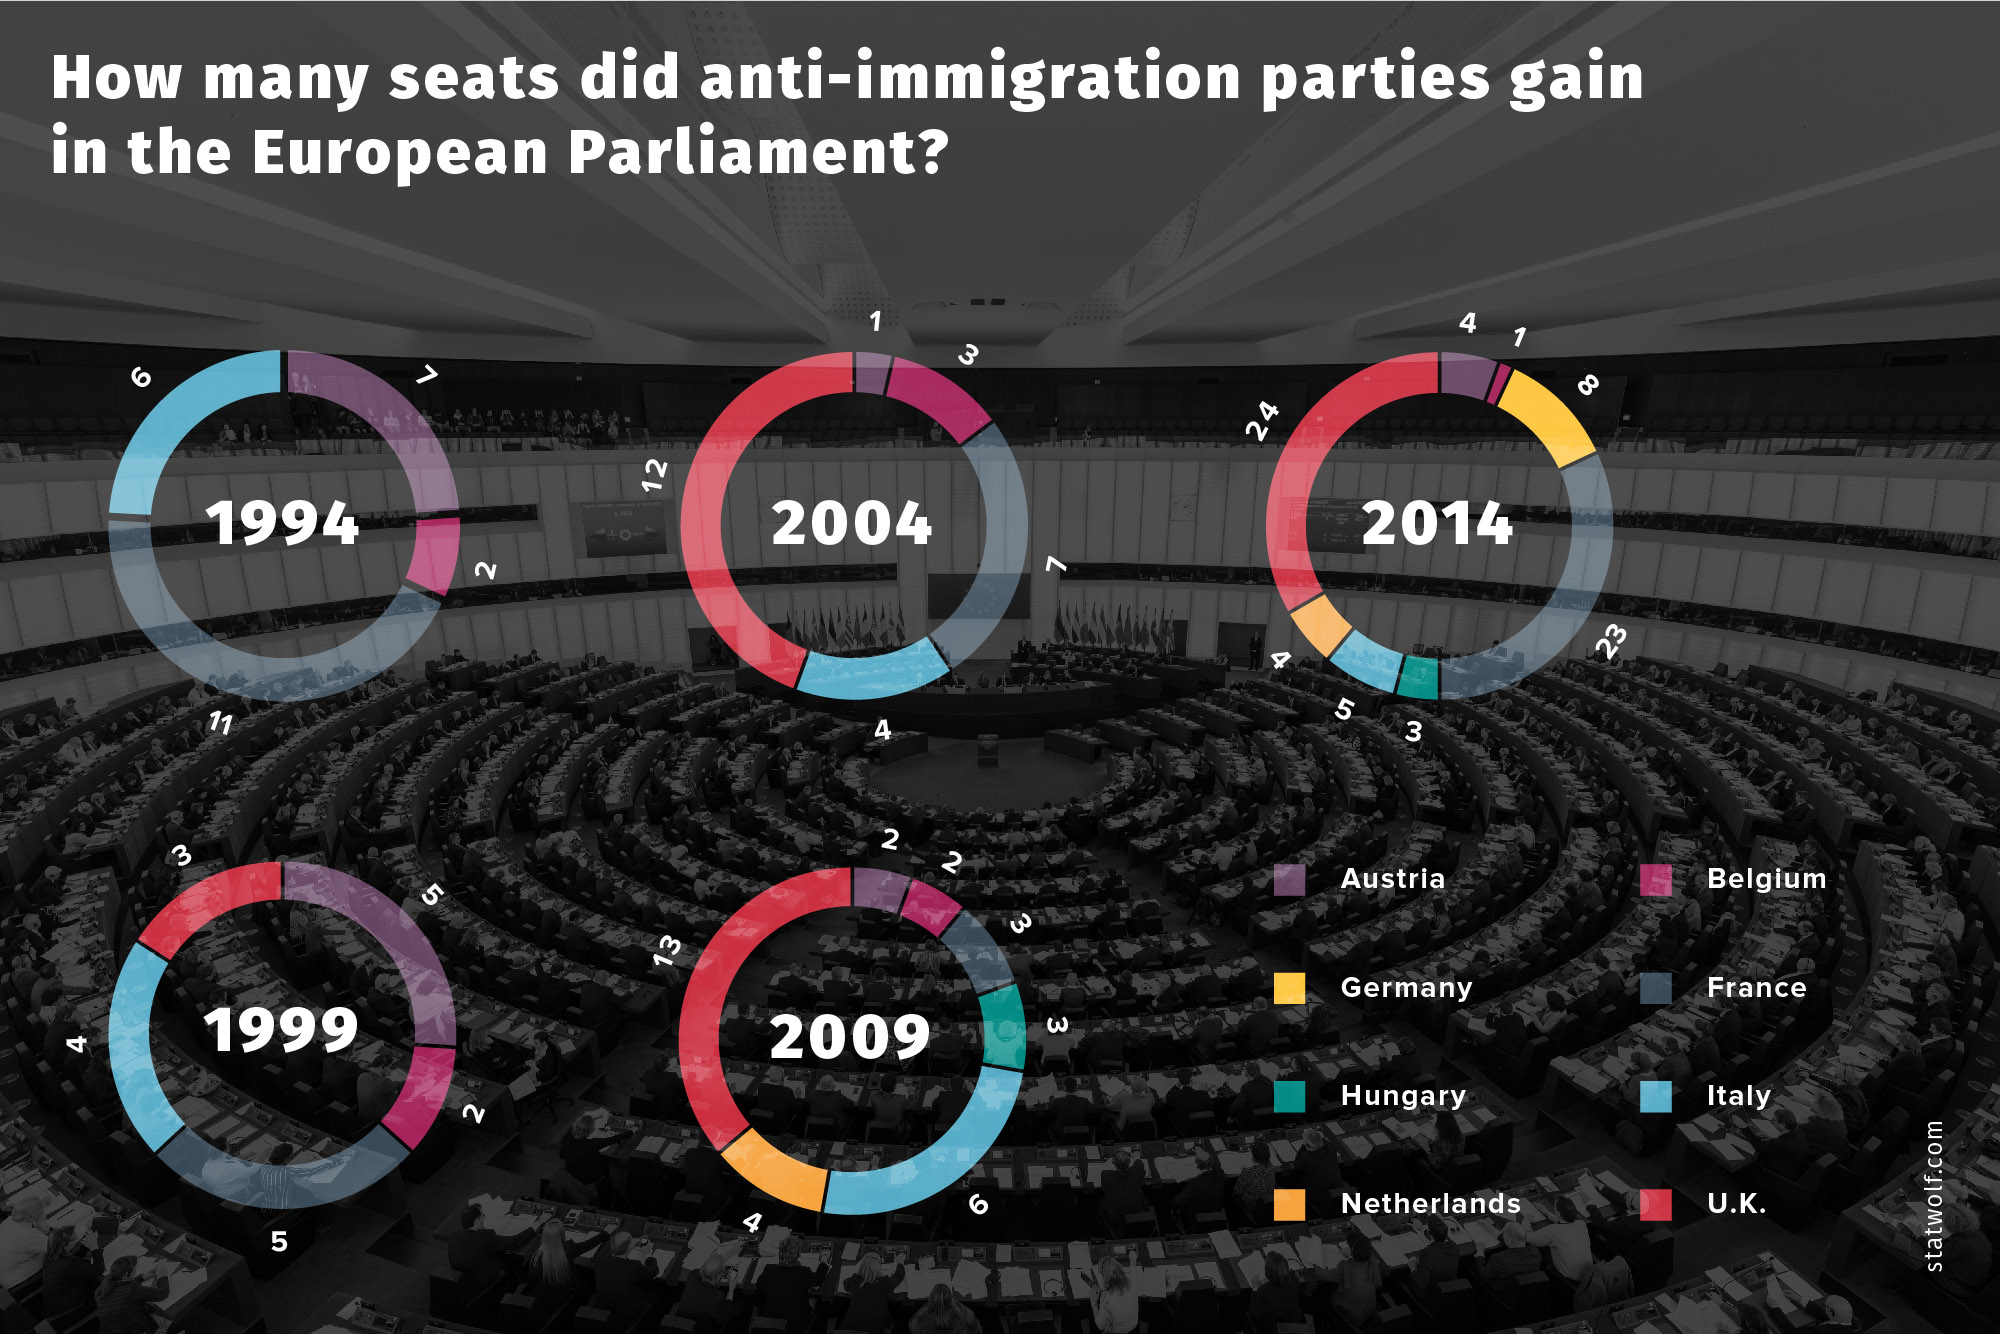 HOw many Seats Did Anti-immigration Parties Gain In The Education Parliament